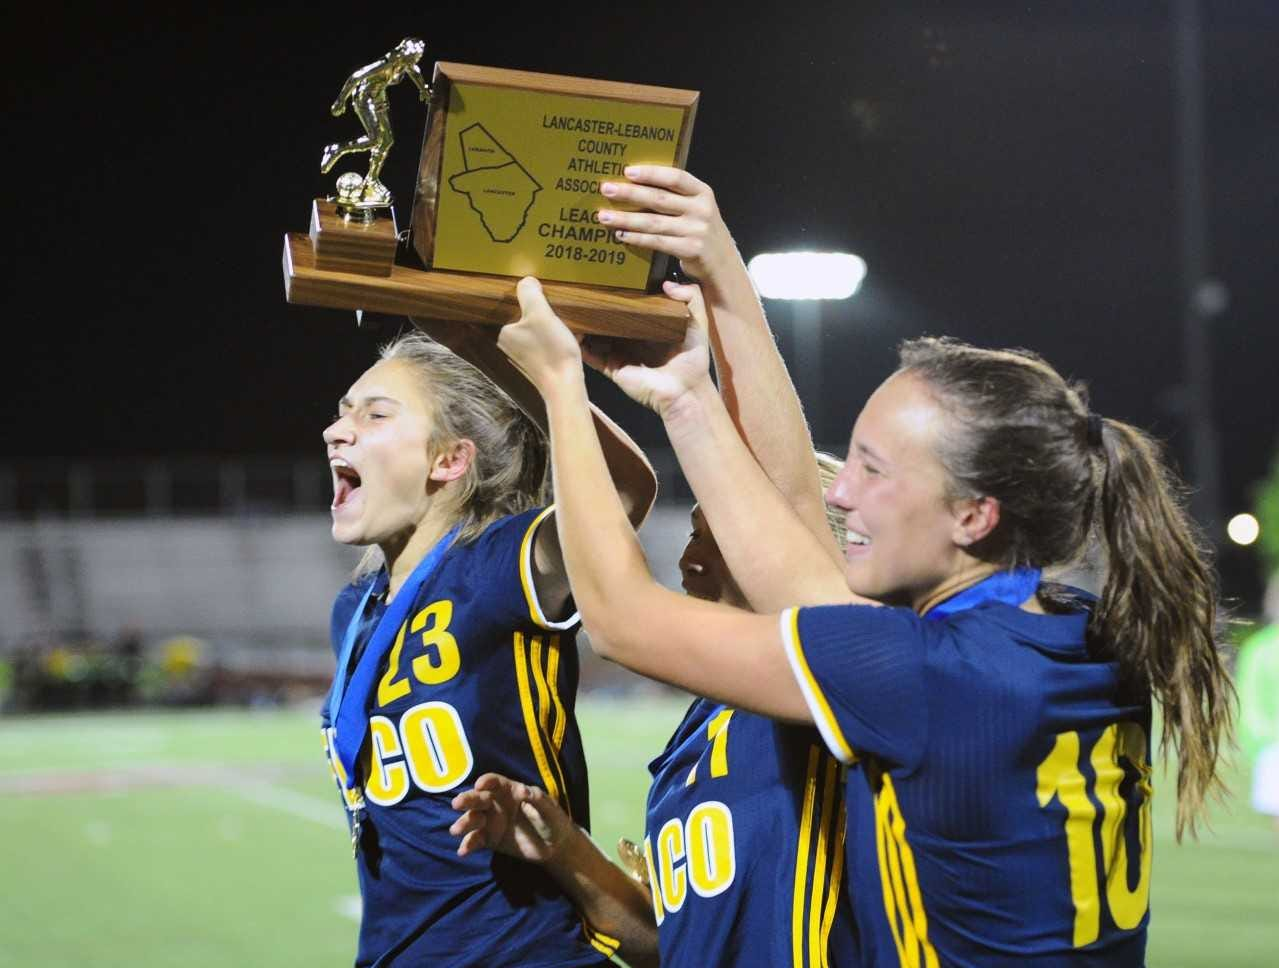 Elco captains, from left, Jordan Rosengrant, Julia Nelson and Ryelle Shuey raise the Lancaster-Lebanon League championship trophy following Thursday's 2-1 title game win over Conestoga Valley.